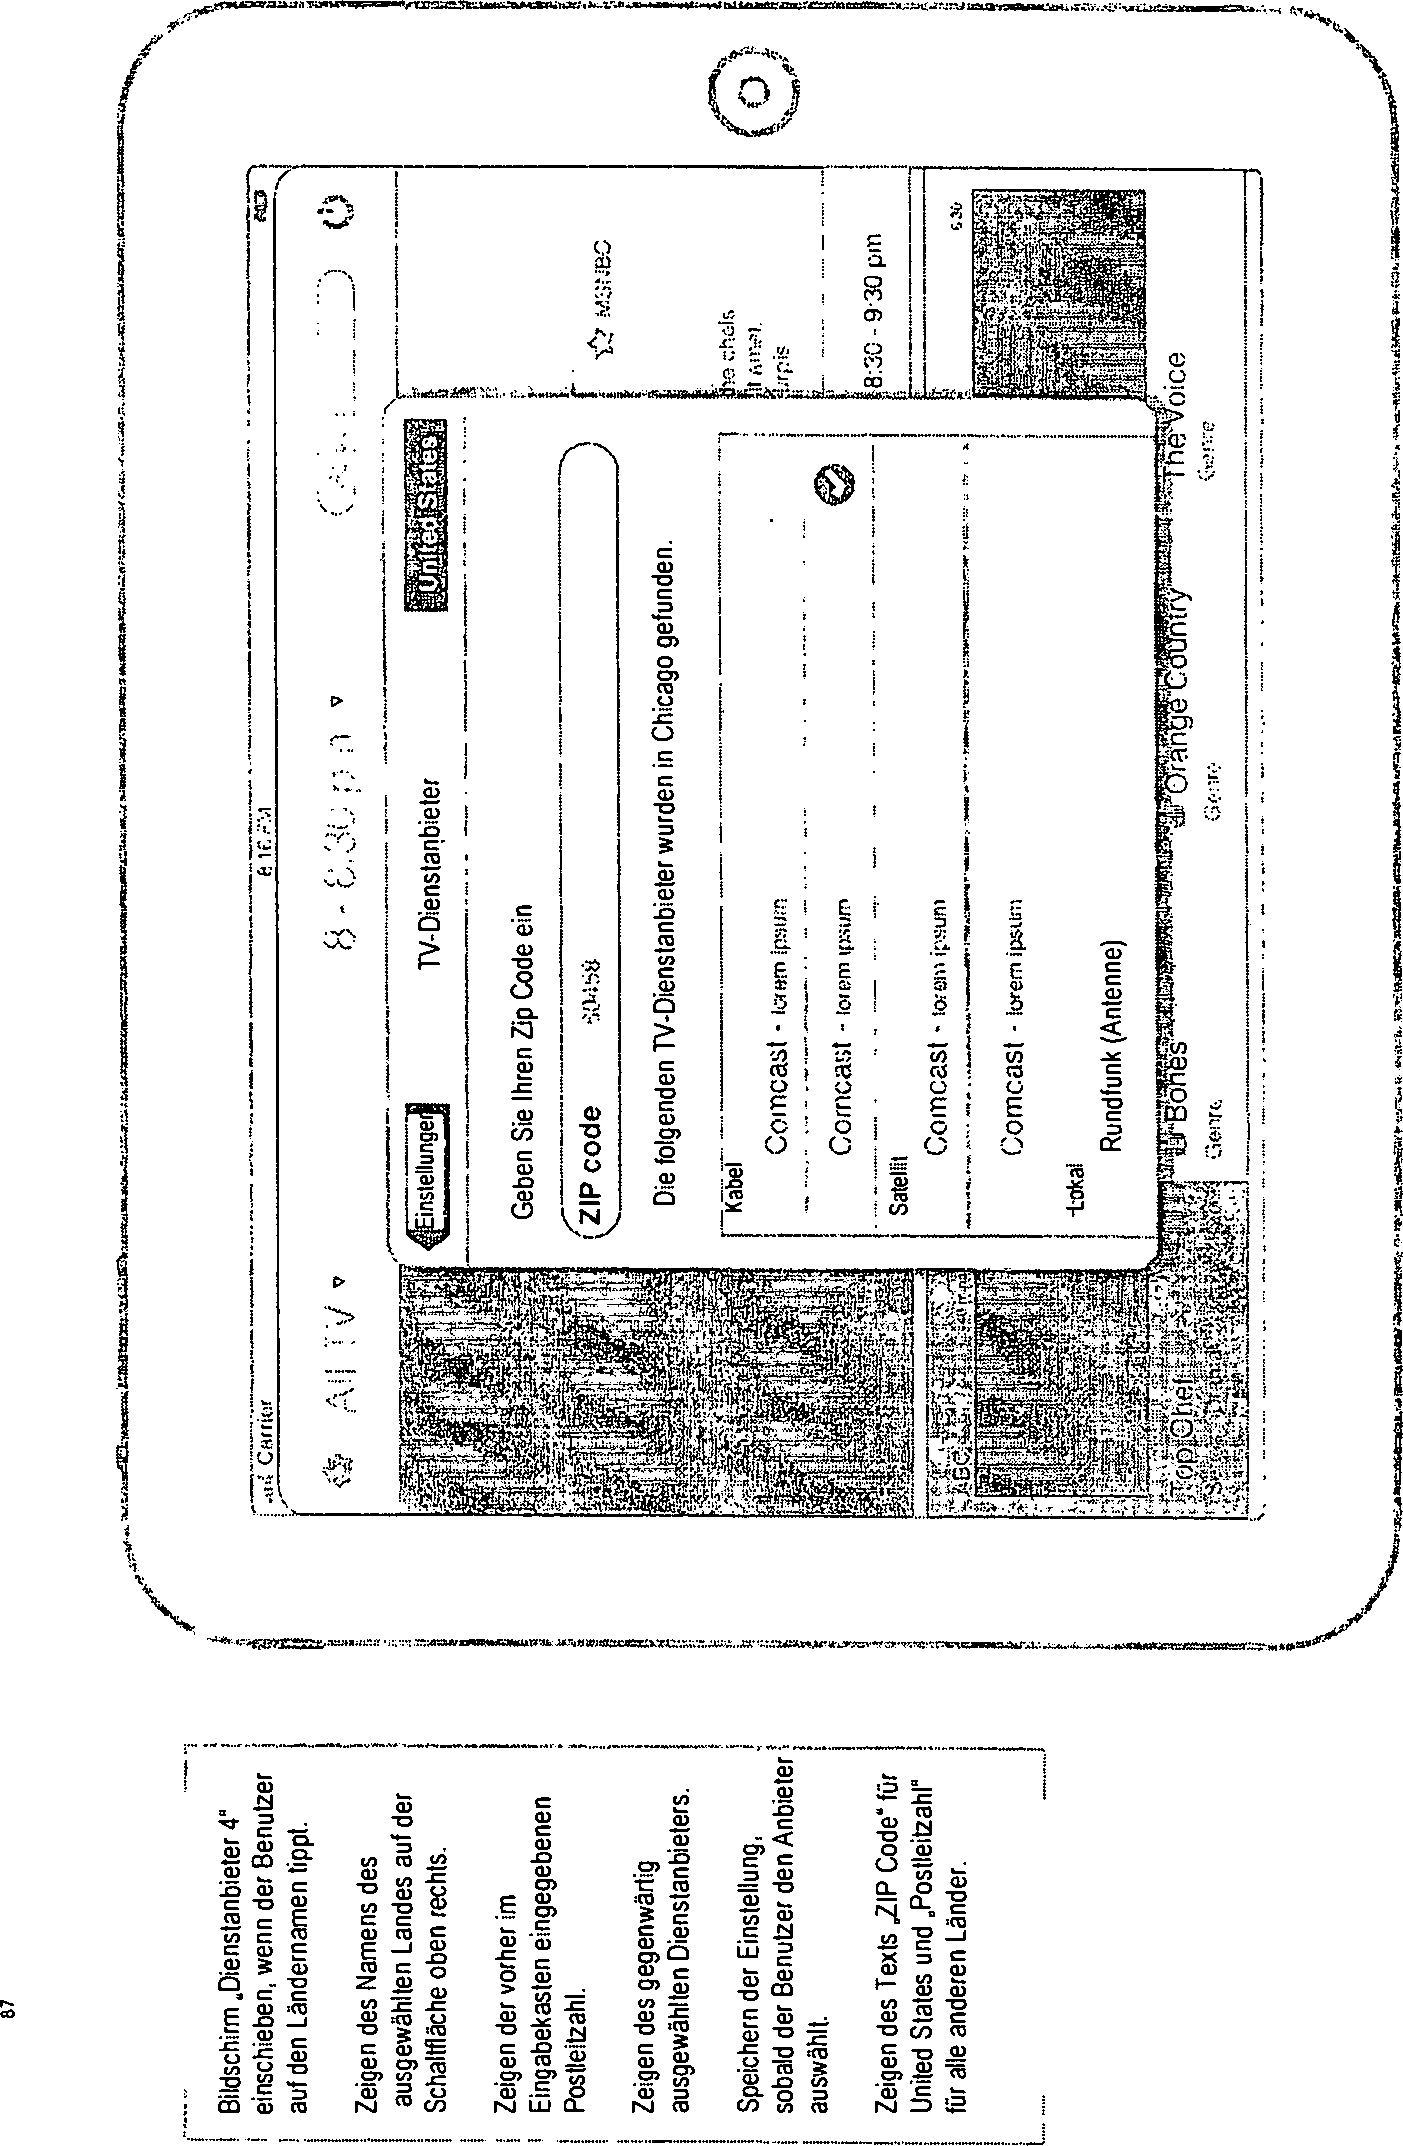 DE102012212514A1 - Remote user interface for handset - Google Patents